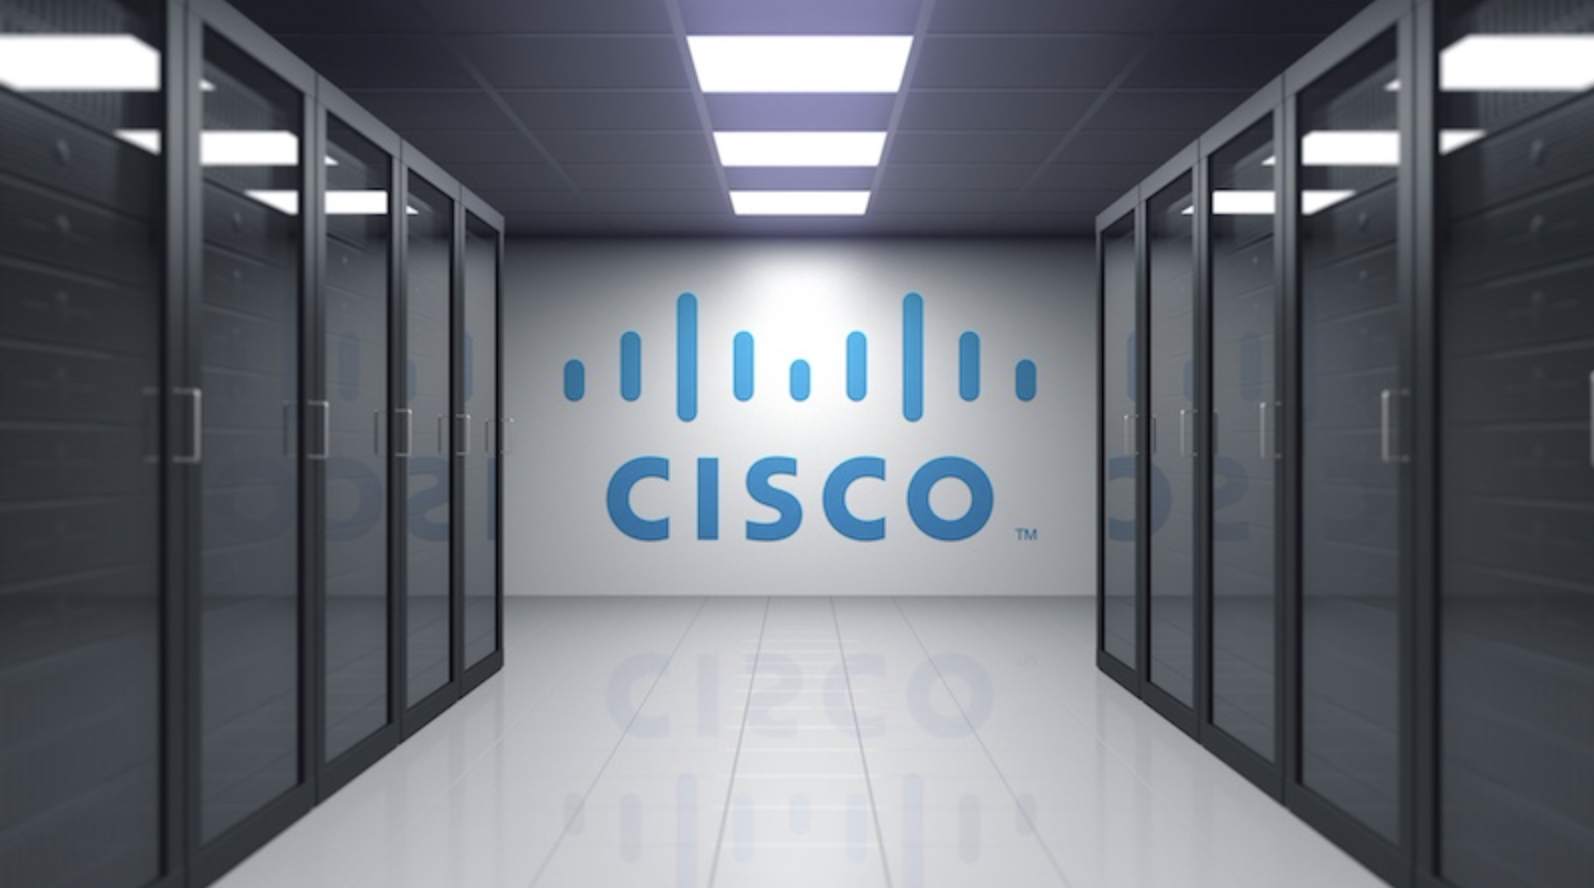 Most Credible Sources of Comprehensive Prep Materials and Up-to-Date Practice Tests for Cisco 300-430